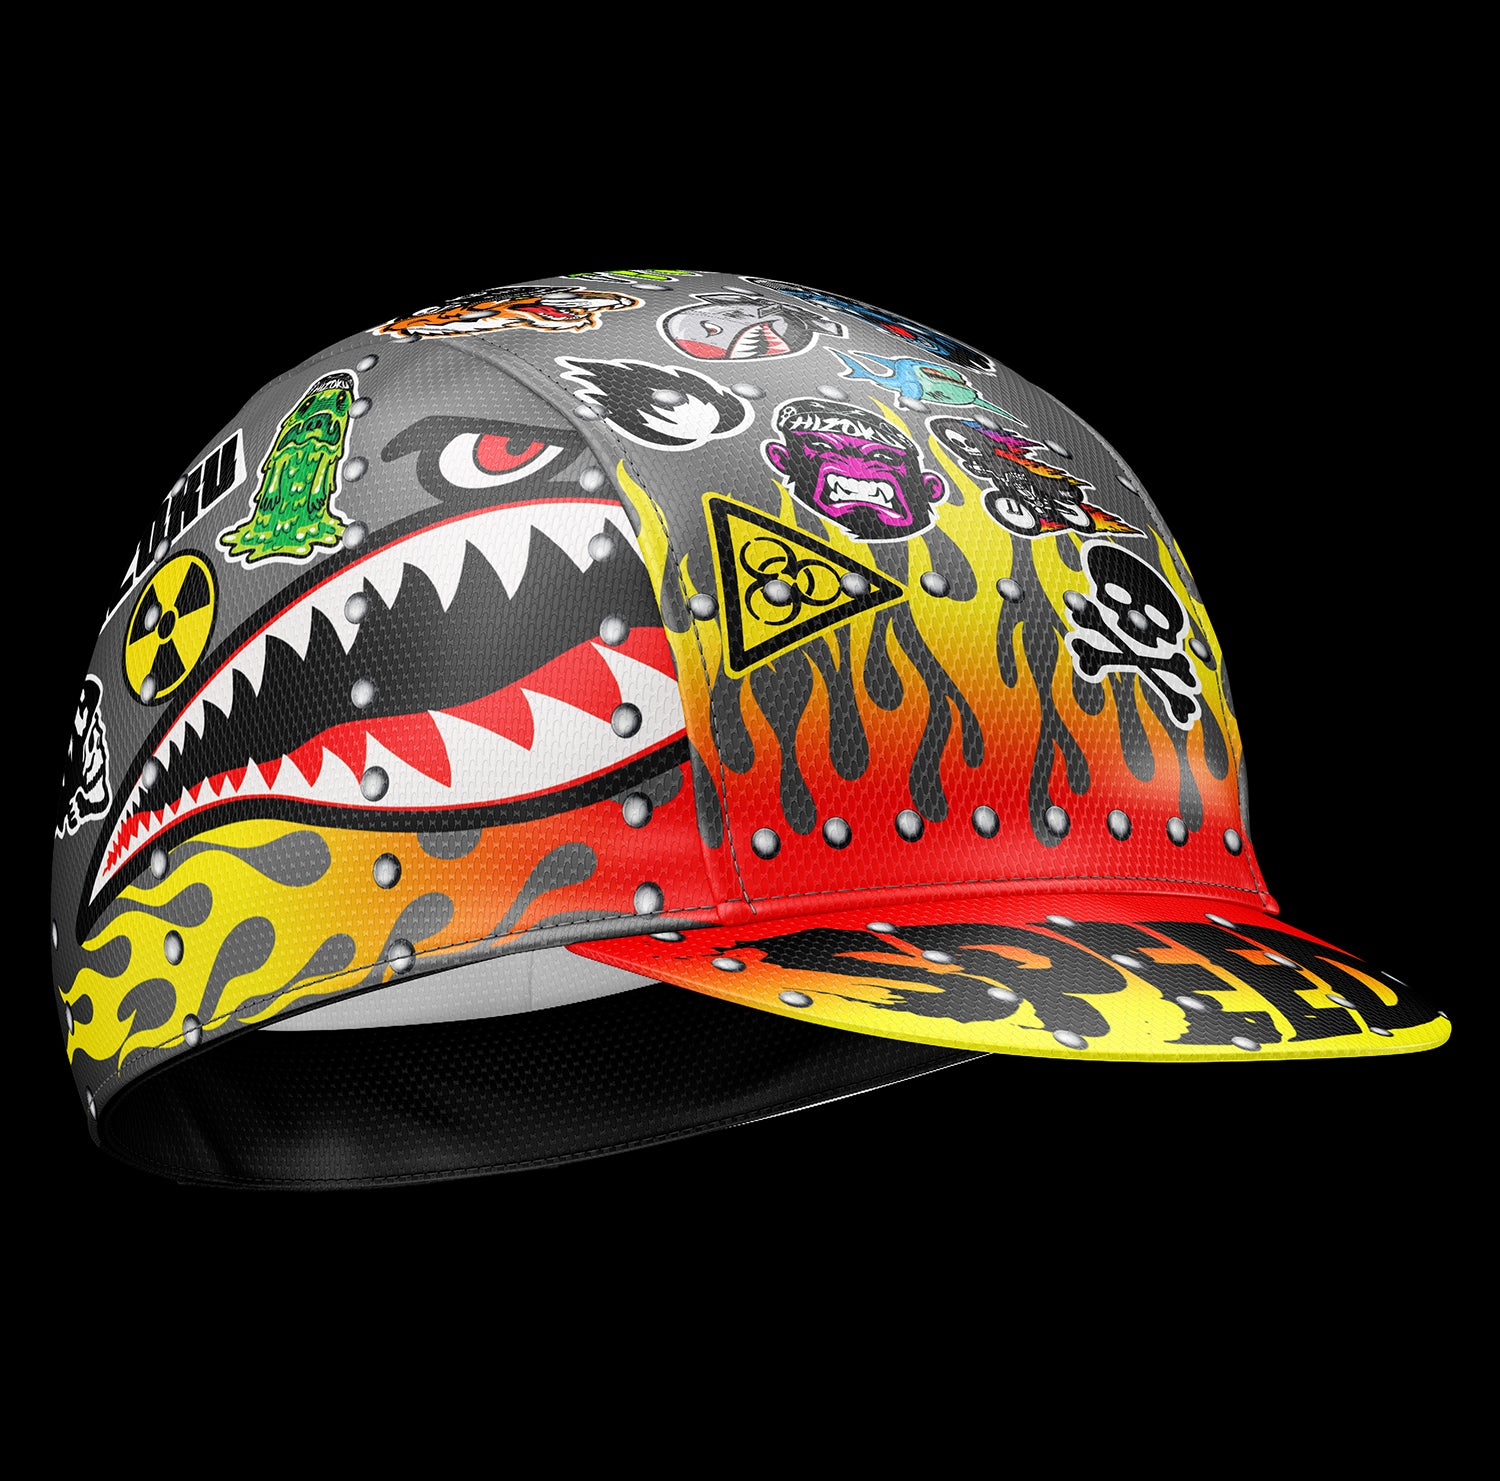 Pre-Order Hizoku Hot Rod Cycling Cap Ships out June 14th